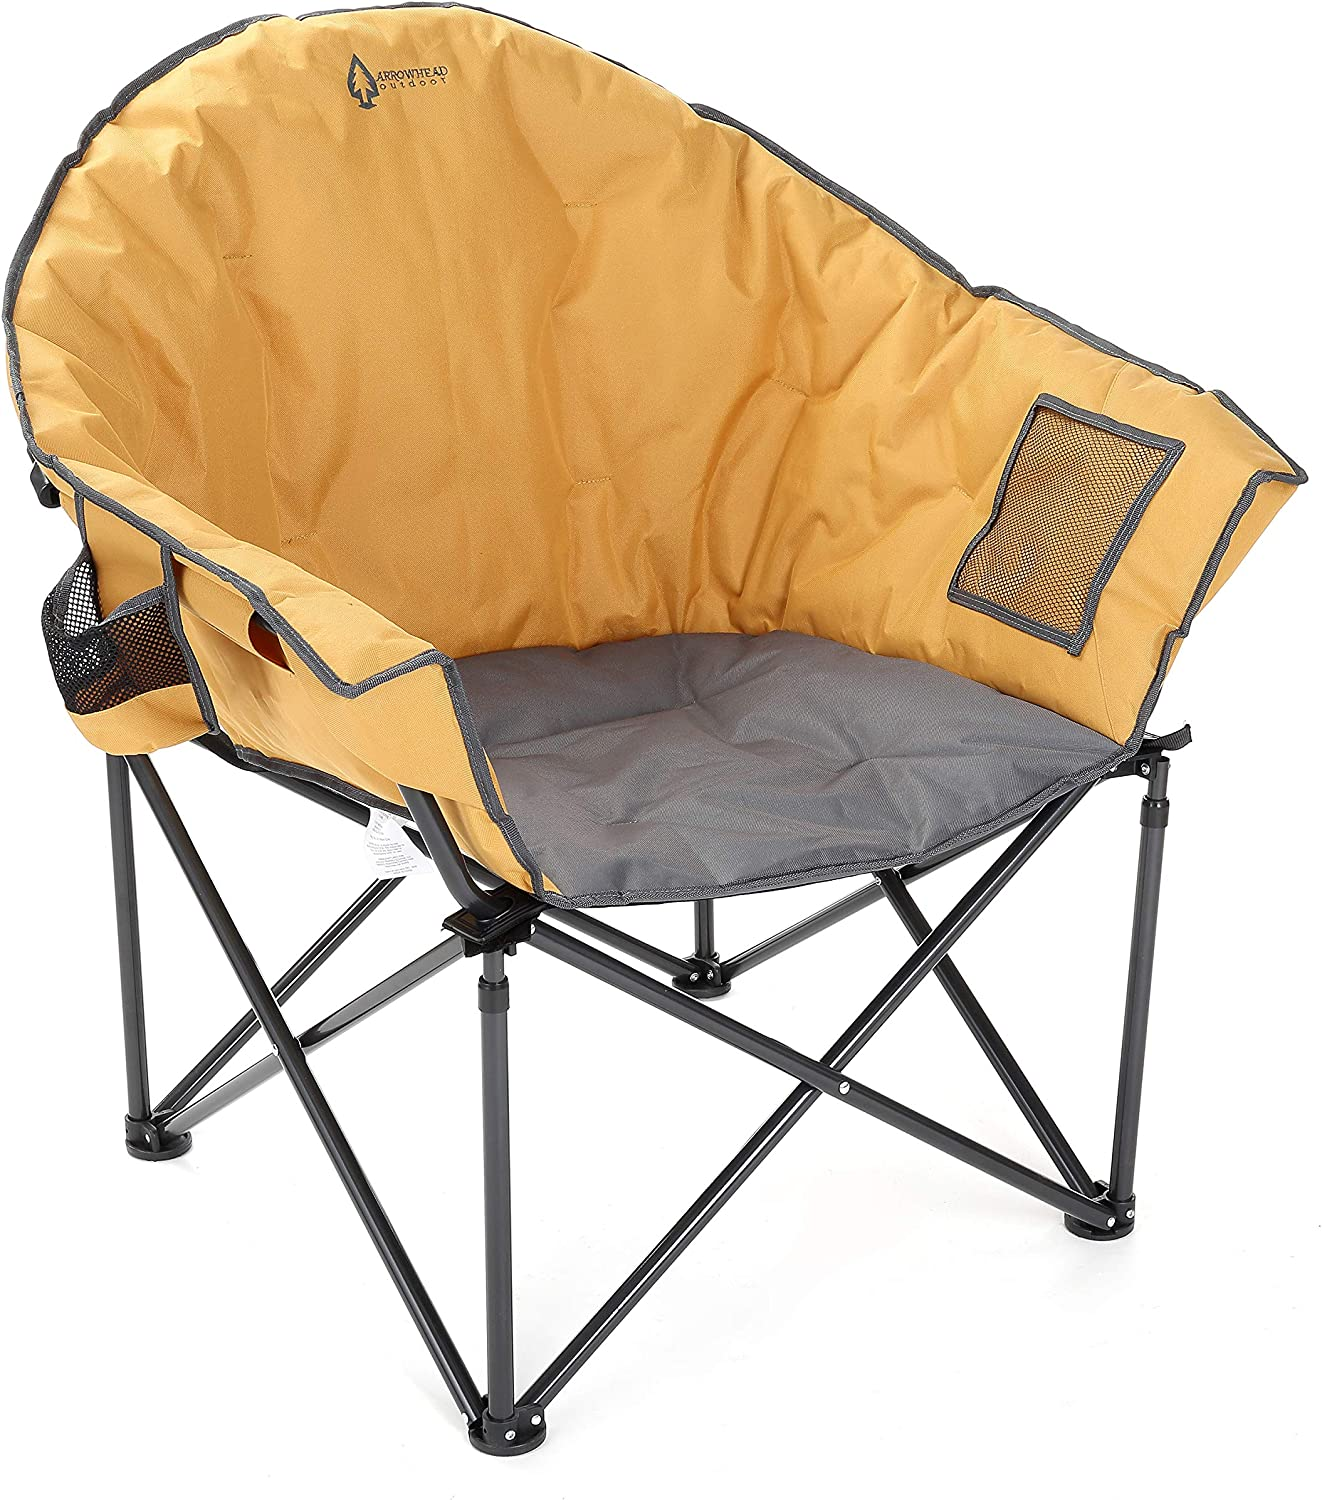 ARROWHEAD Outdoor Oversized Folding Camping Chair